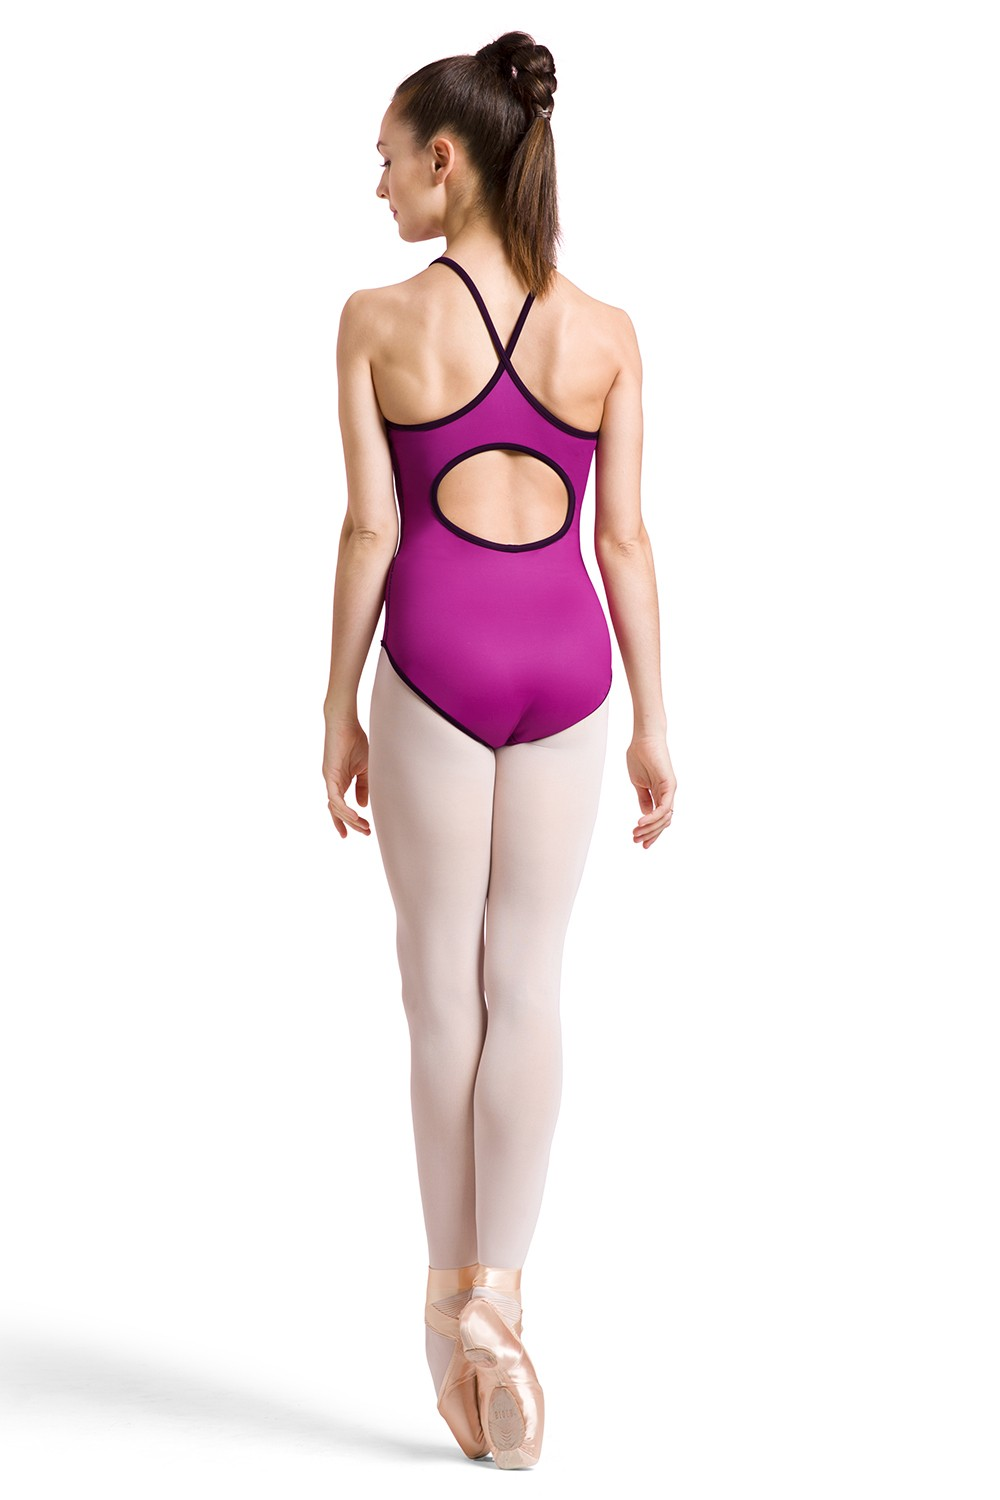 Afton   Women's Dance Leotards